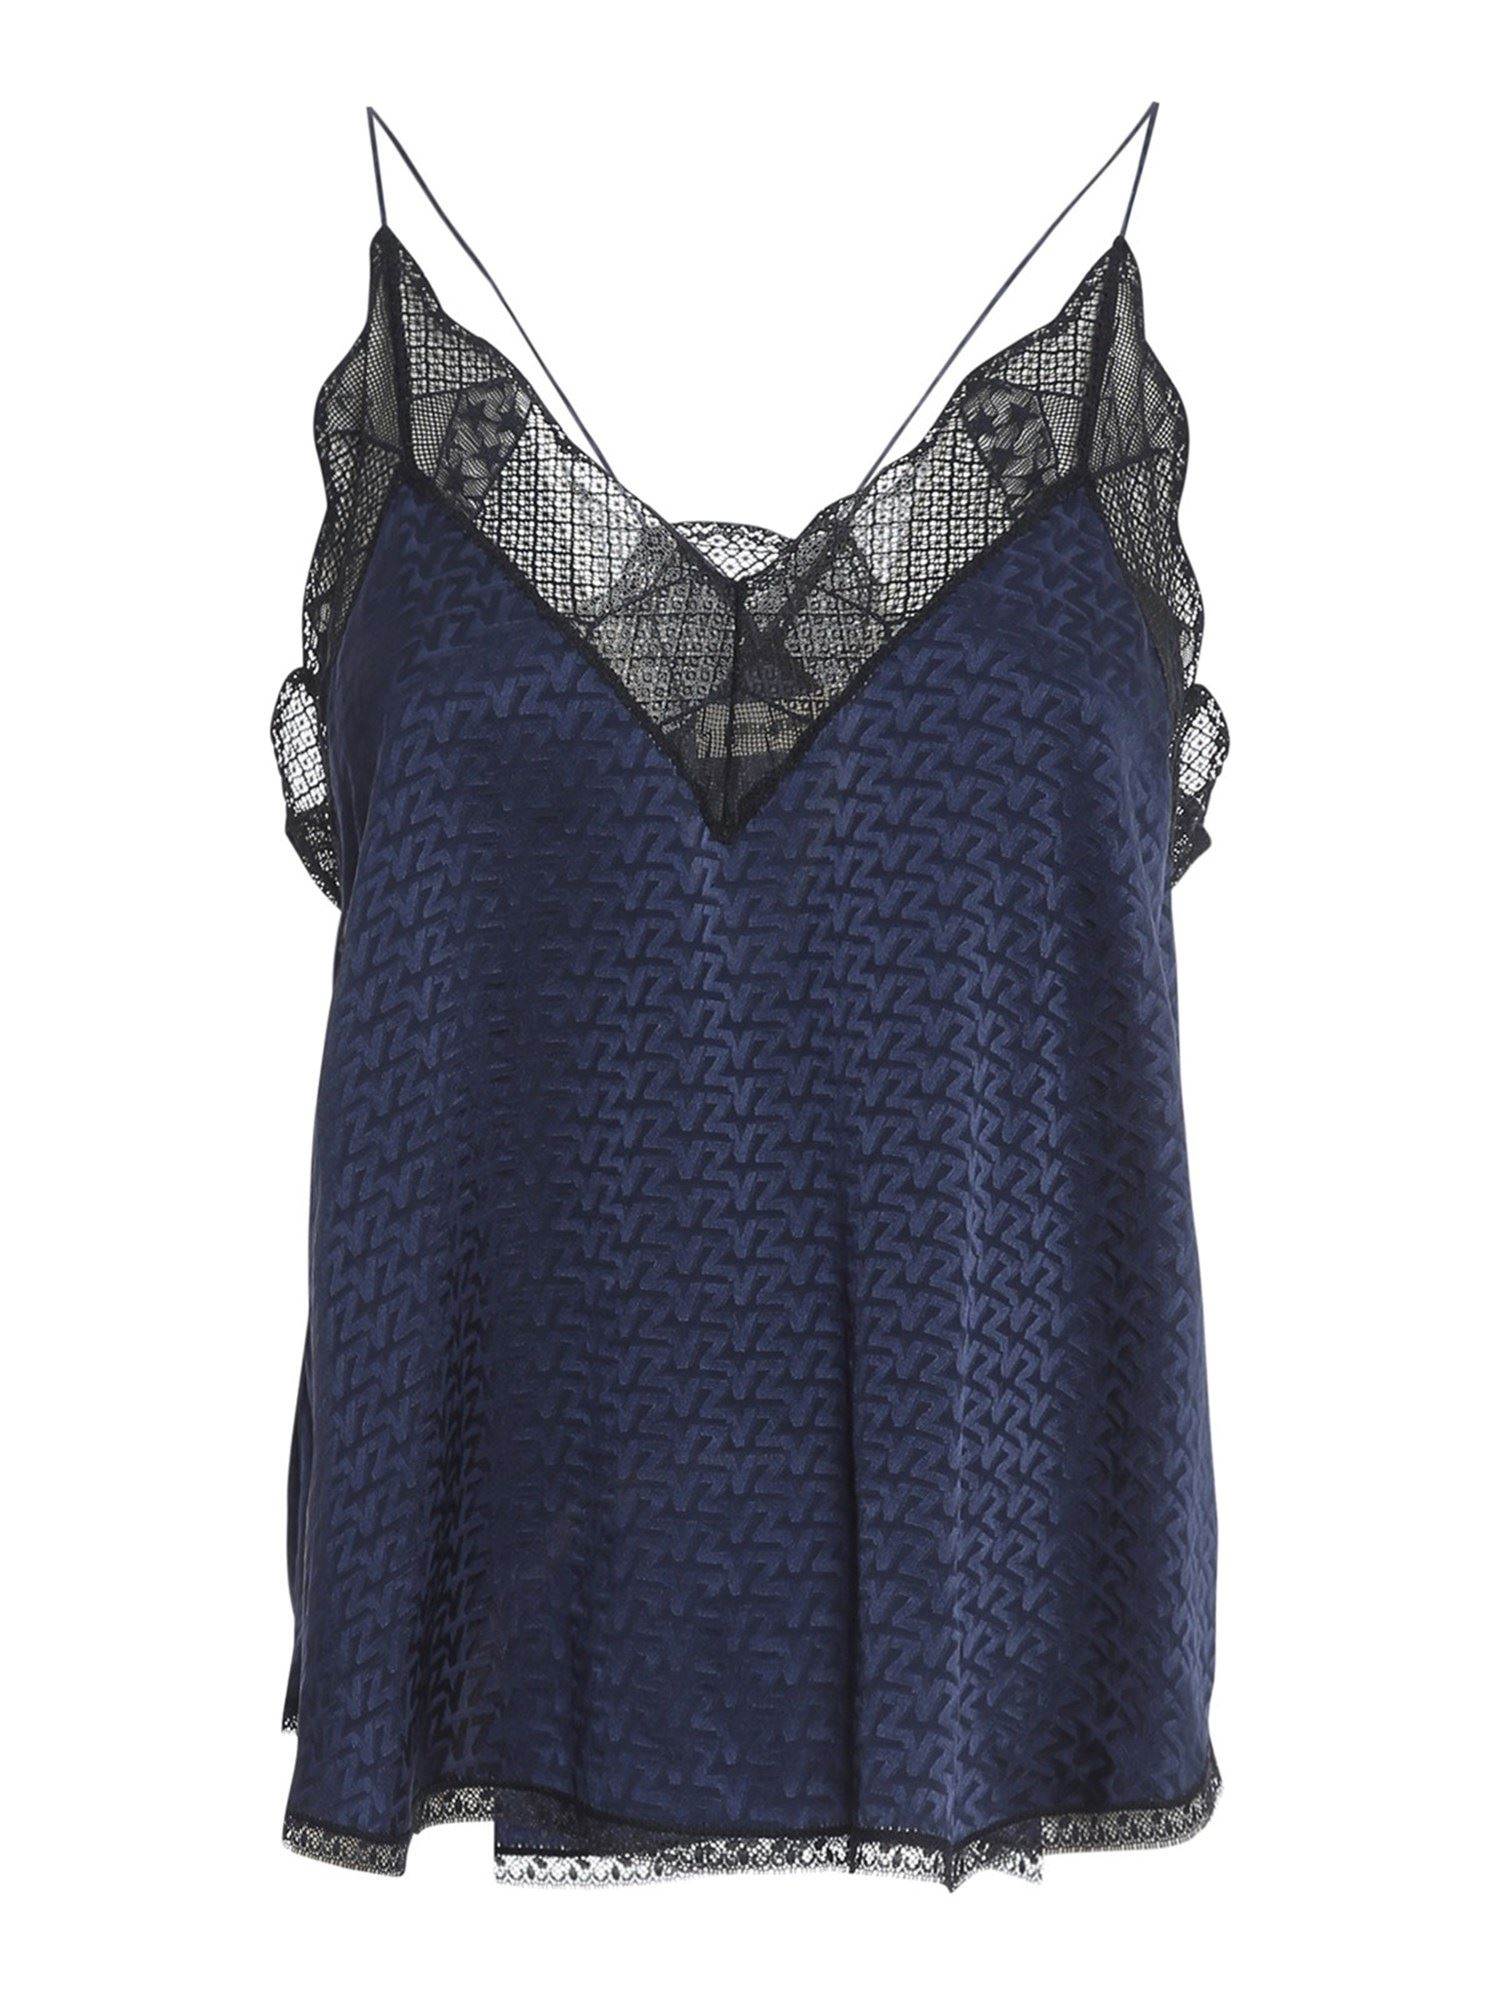 Zadig & Voltaire CHRISTY TOP IN BLUE